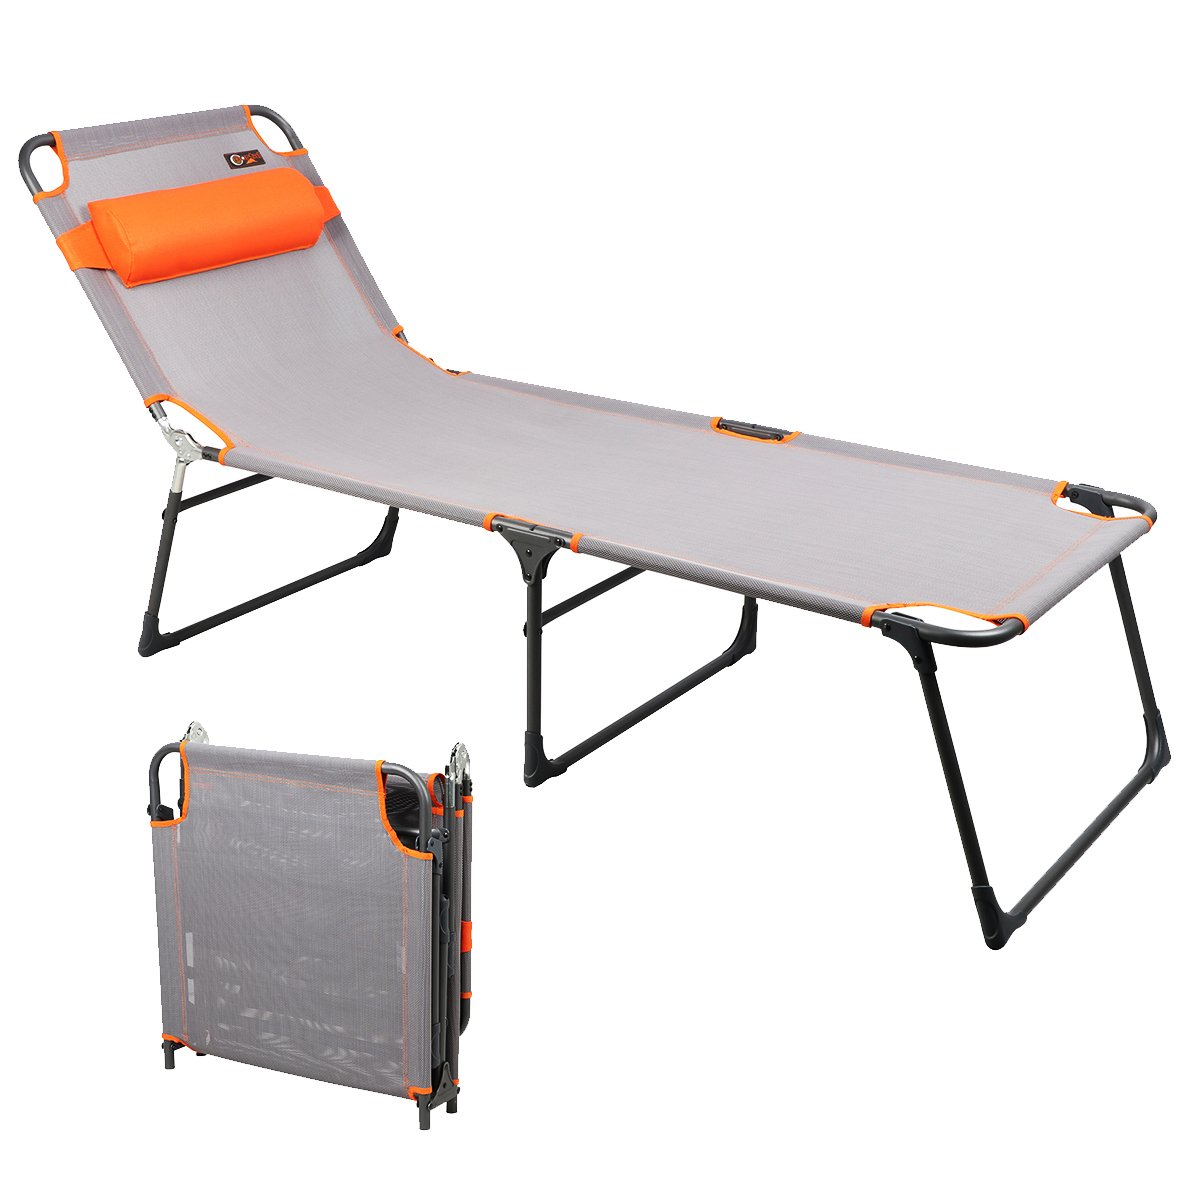 PORTAL Adjustable Folding Reclining Lounger Beach Bed Cot, Grey by PORTAL